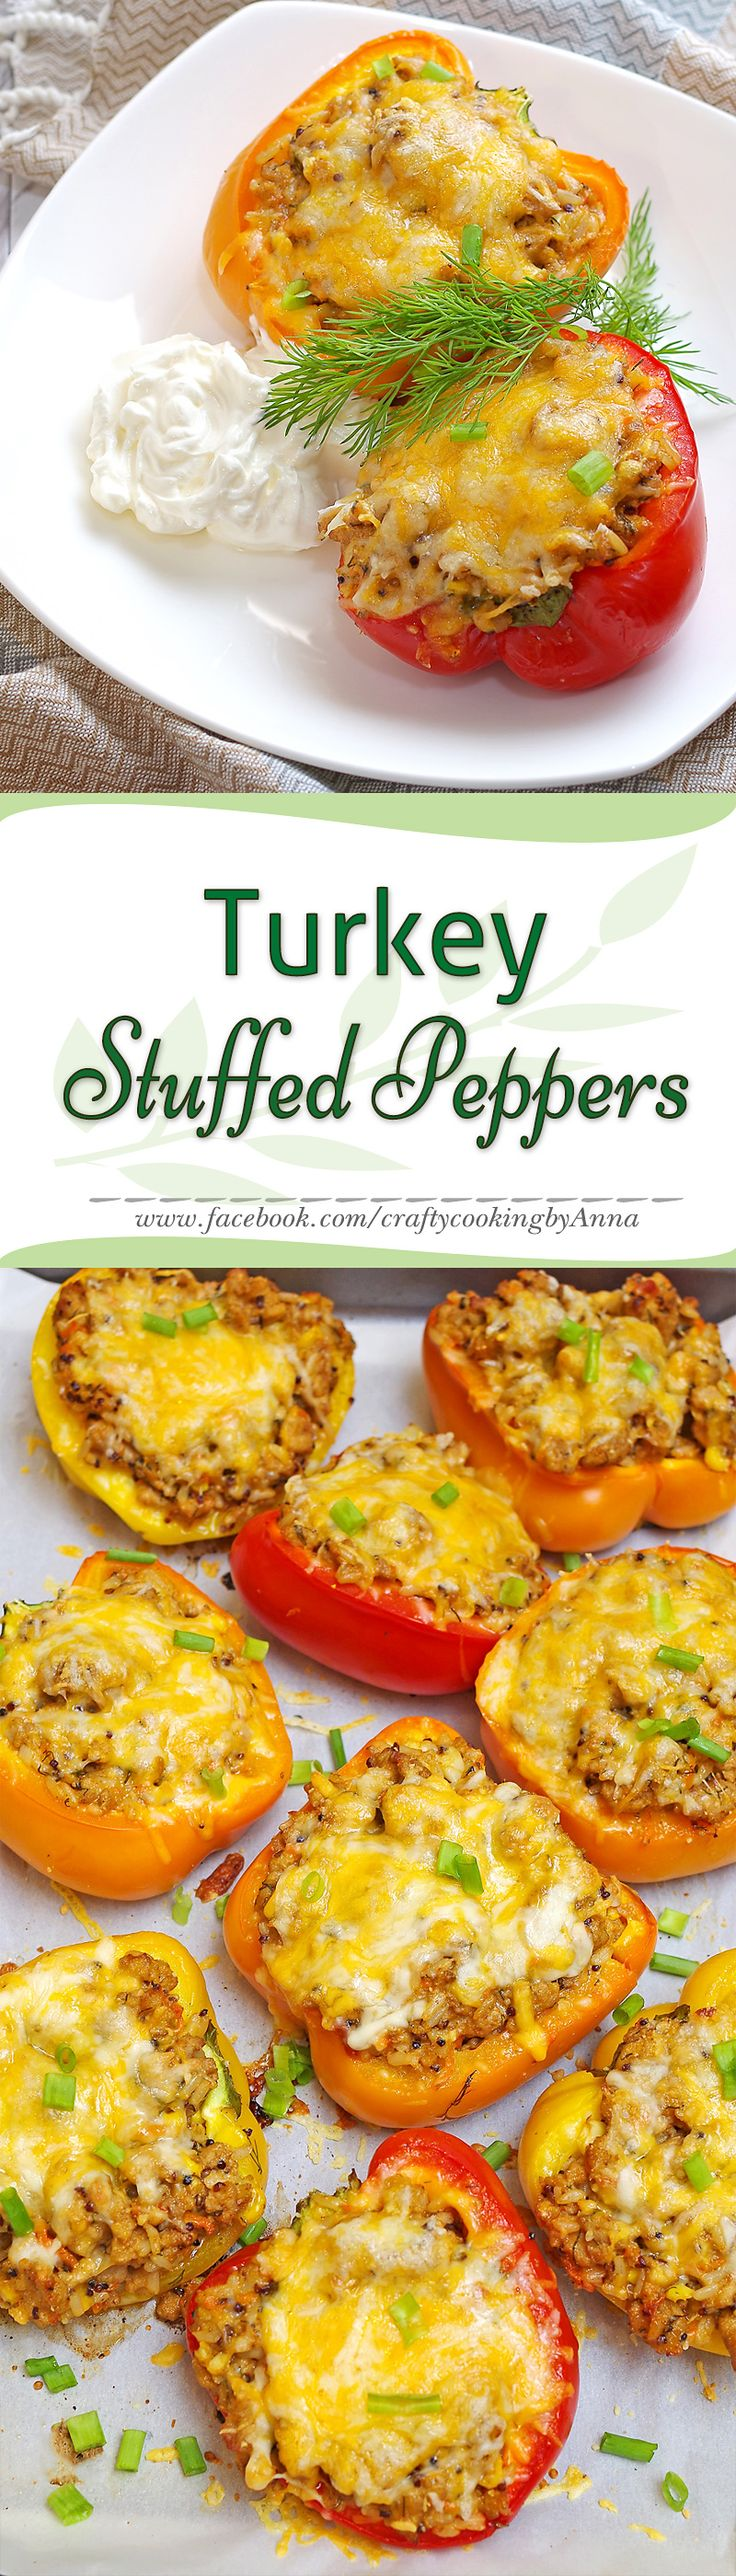 Delicious Turkey Stuffed Peppers! #Easy #Delicious #Everyday #Beautiful #Homecooking #Recipes #Dinner #Breakfast #Lunch #Kids #Foddie #Food #Fresh #Foodfollol #Low-Carb #Low-Cal #Yum #yummy #foodlover #tasty #foodheaven #Hungry #FollowMe #CraftyCookingByAnna If you like my recipes, please Follow Me - http://www.pinterest.com/annavil/ and https://instagram.com/craftycookingbyanna/ and Join Me -https://www.facebook.com/craftycookingbyAnna Thank you!